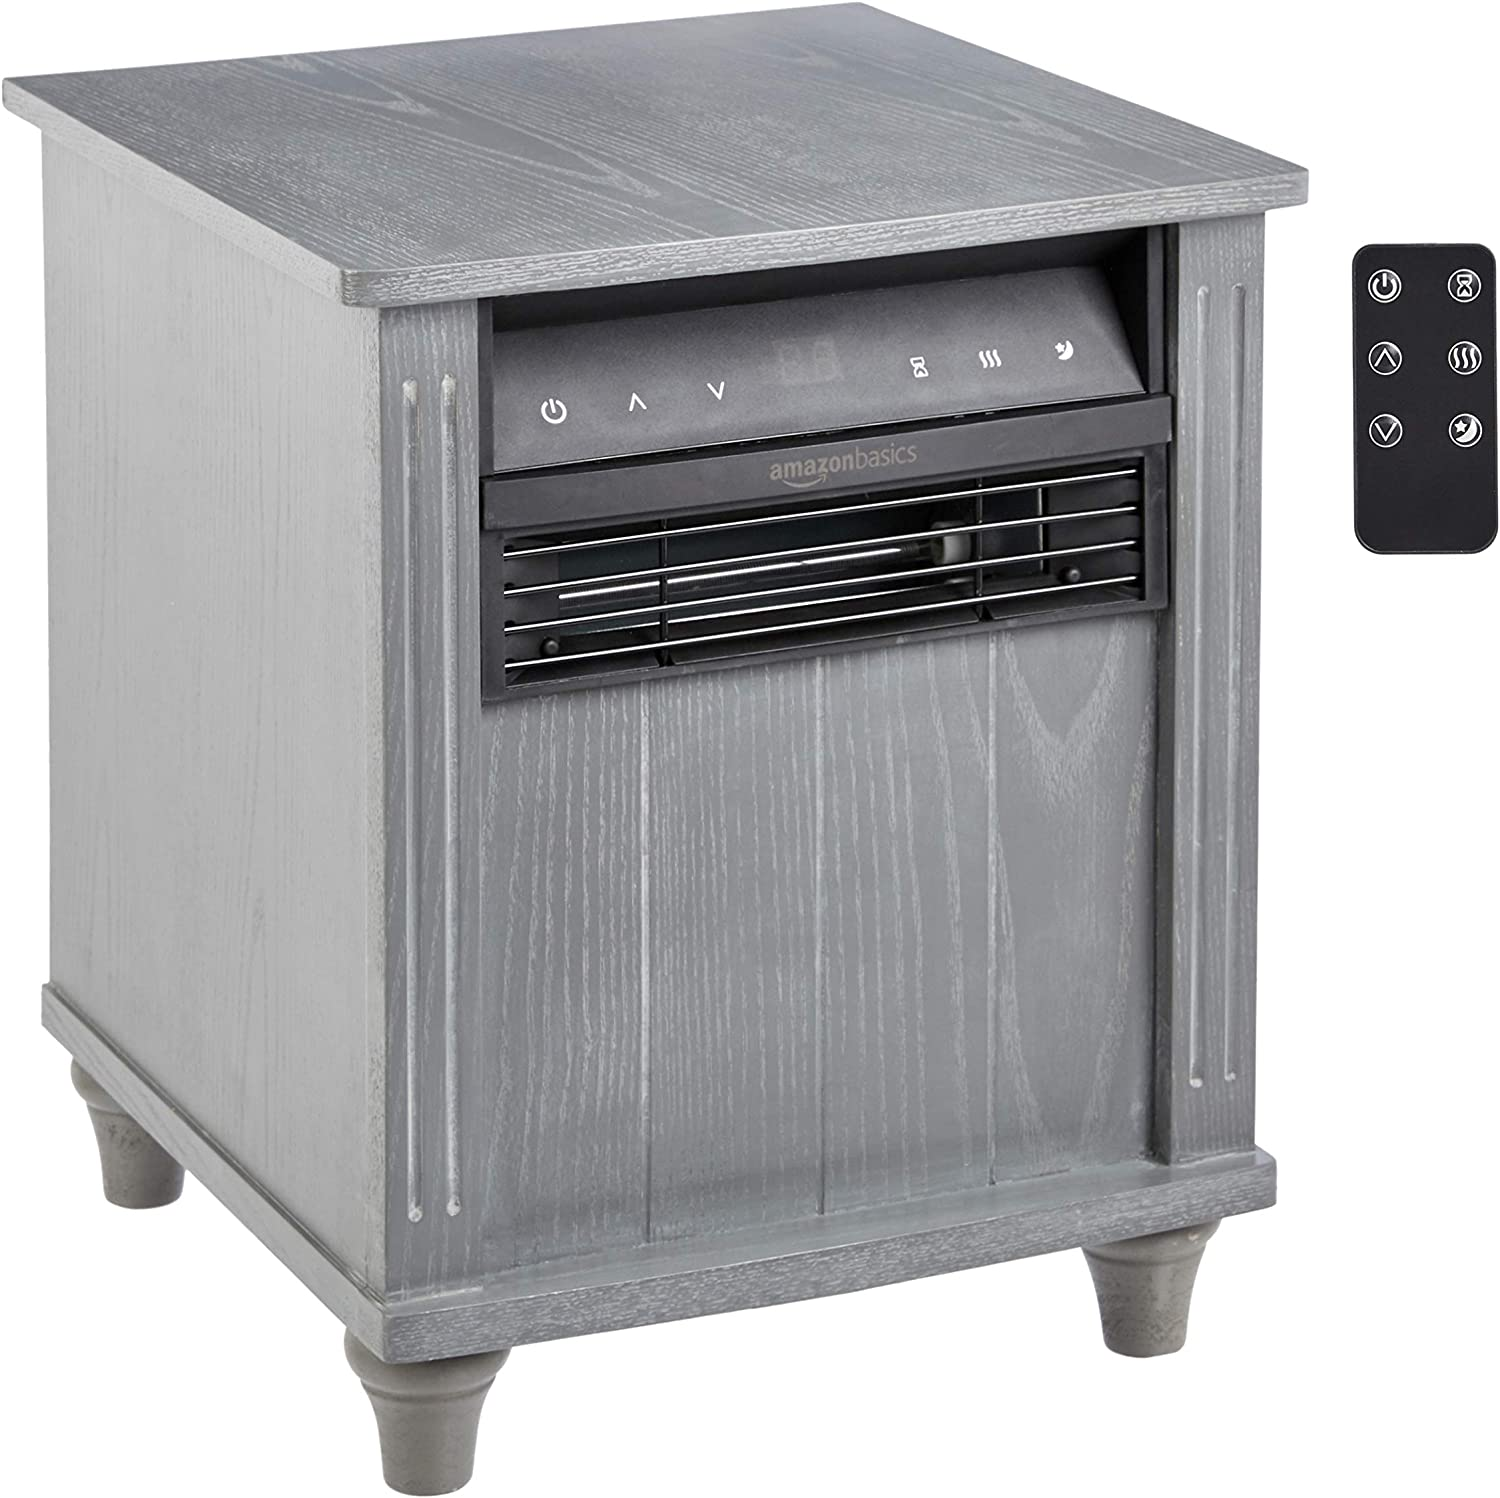 AmazonBasics Cabinet Style Space Heater, Grey Wood Grain Finish, 1500W